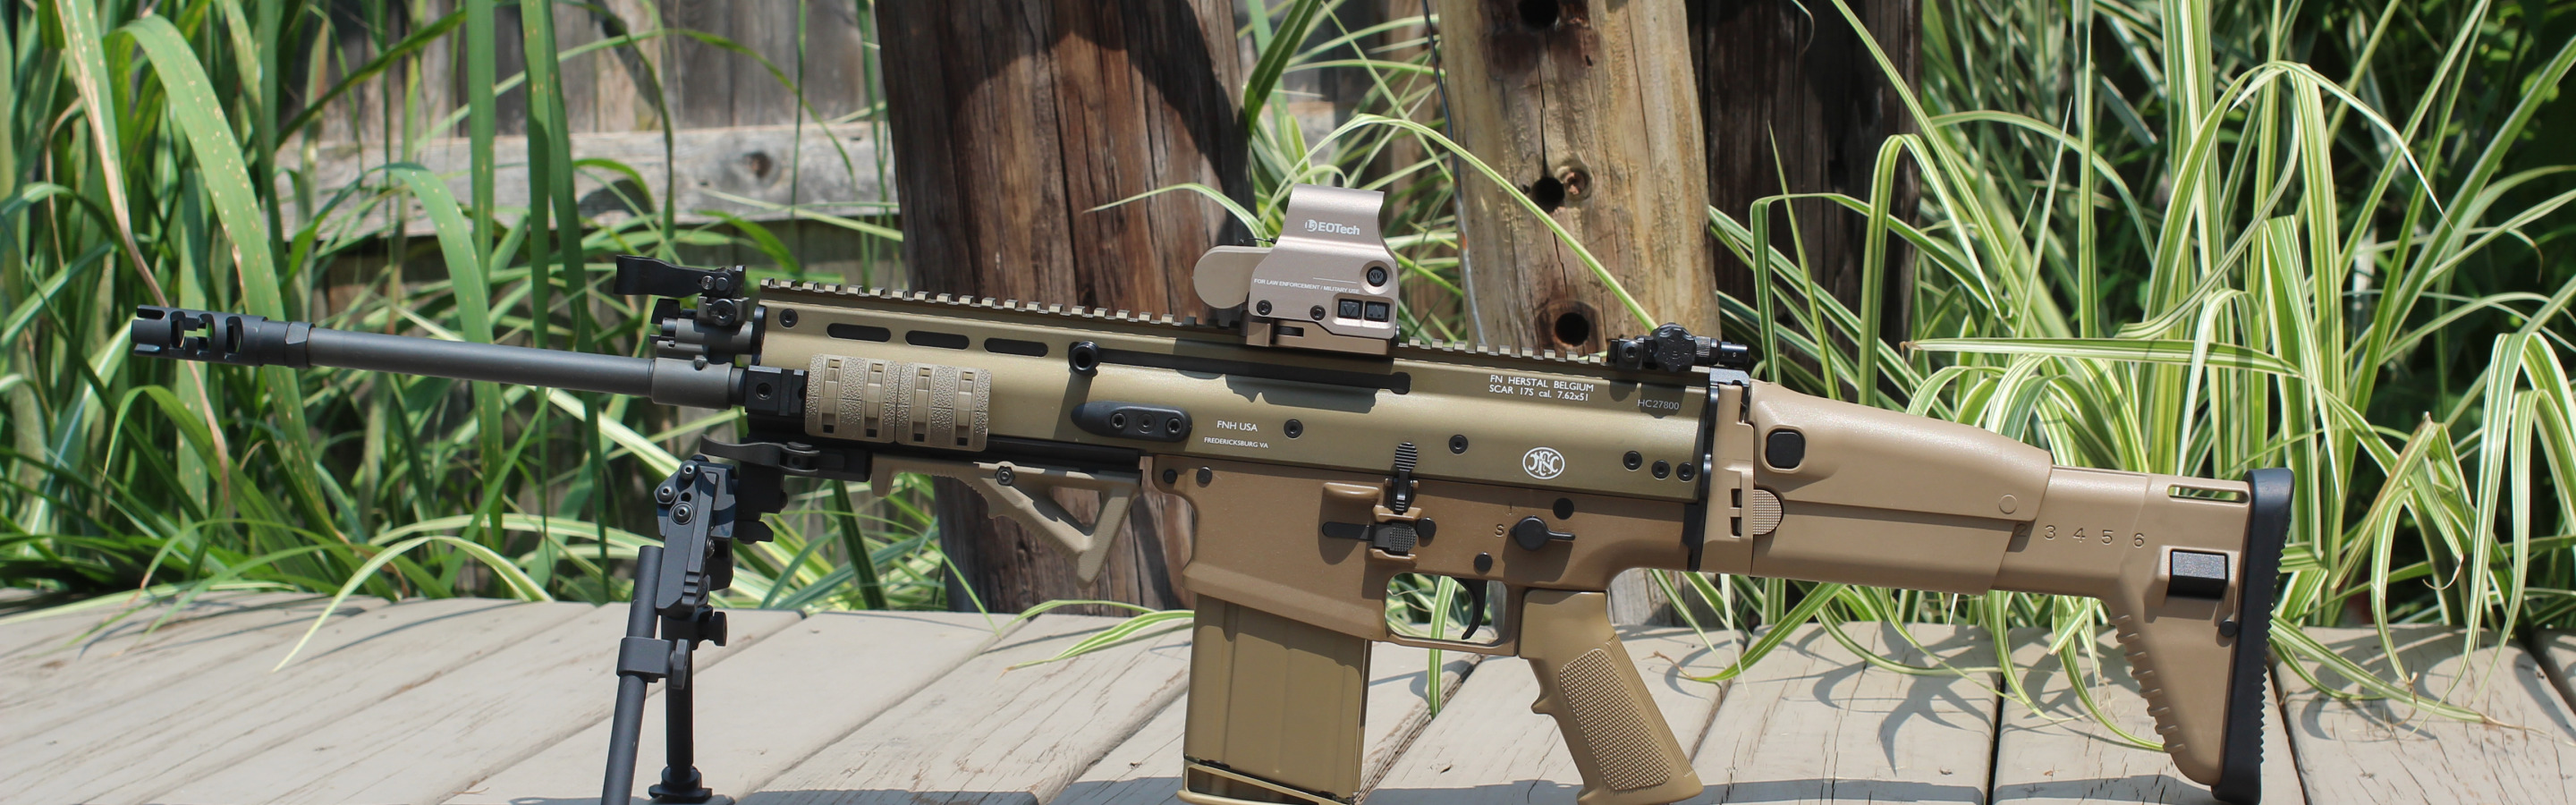 Download wallpaper weapons, machine, bipod, FN SCAR 17S, reflex